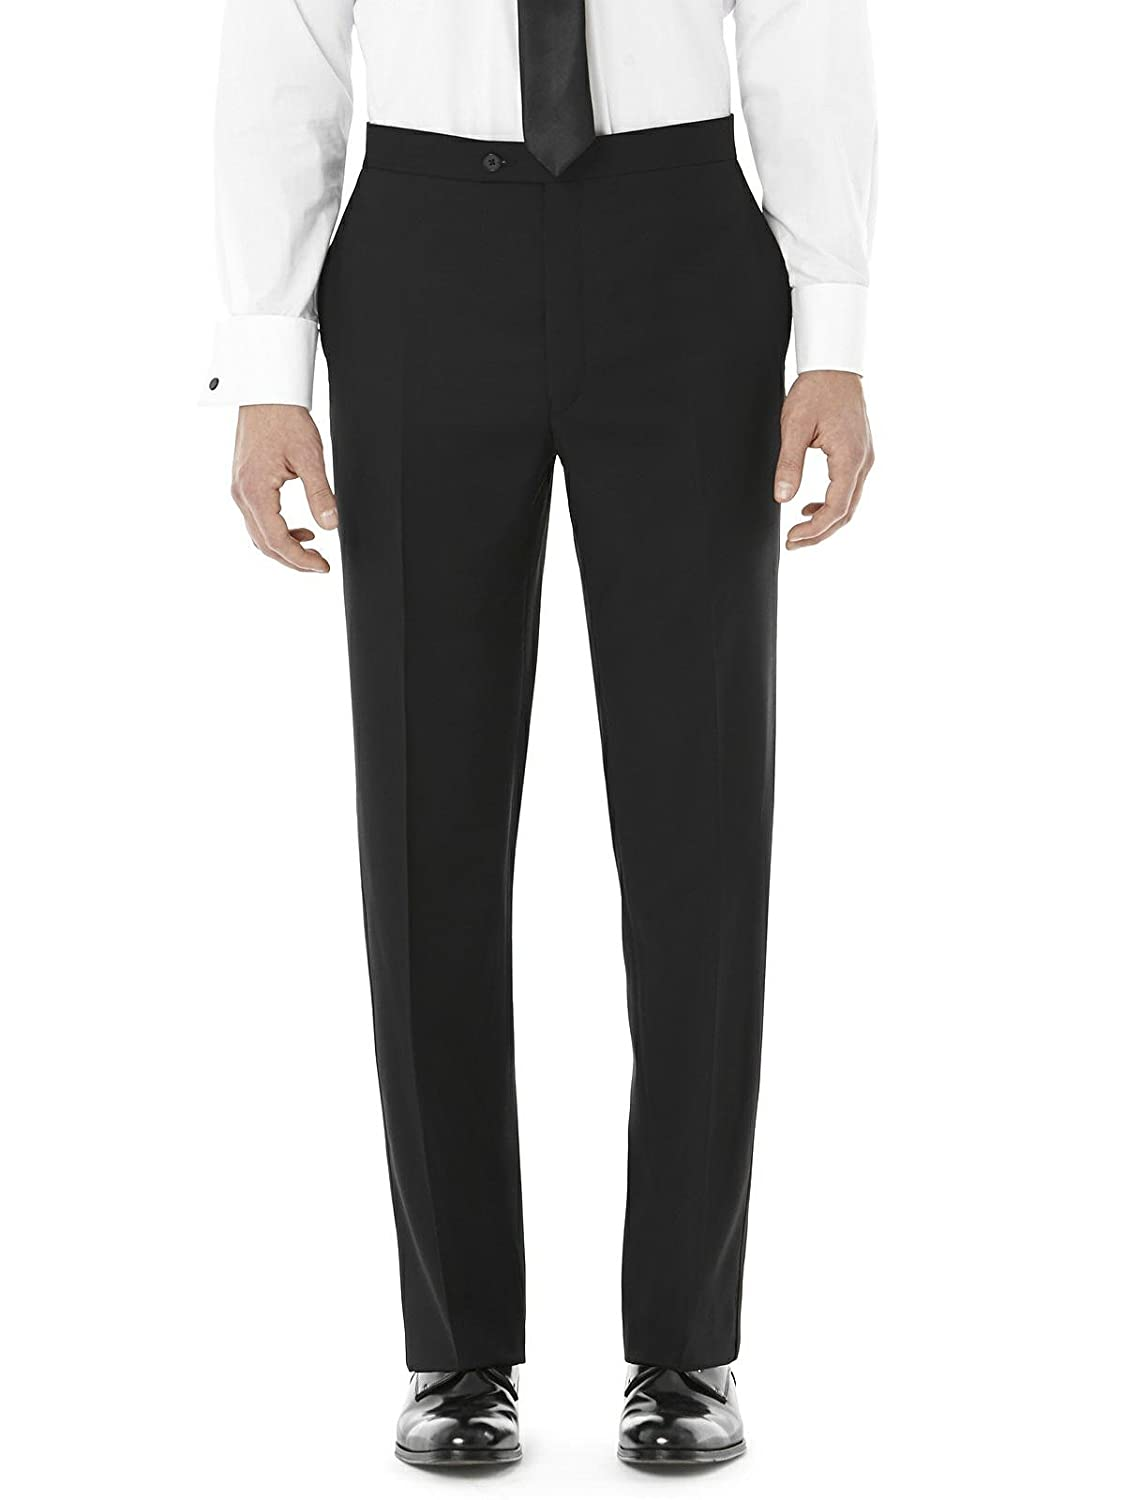 Men's Slim Fit Wool Tuxedo Pants- Dylan by Dessy Group